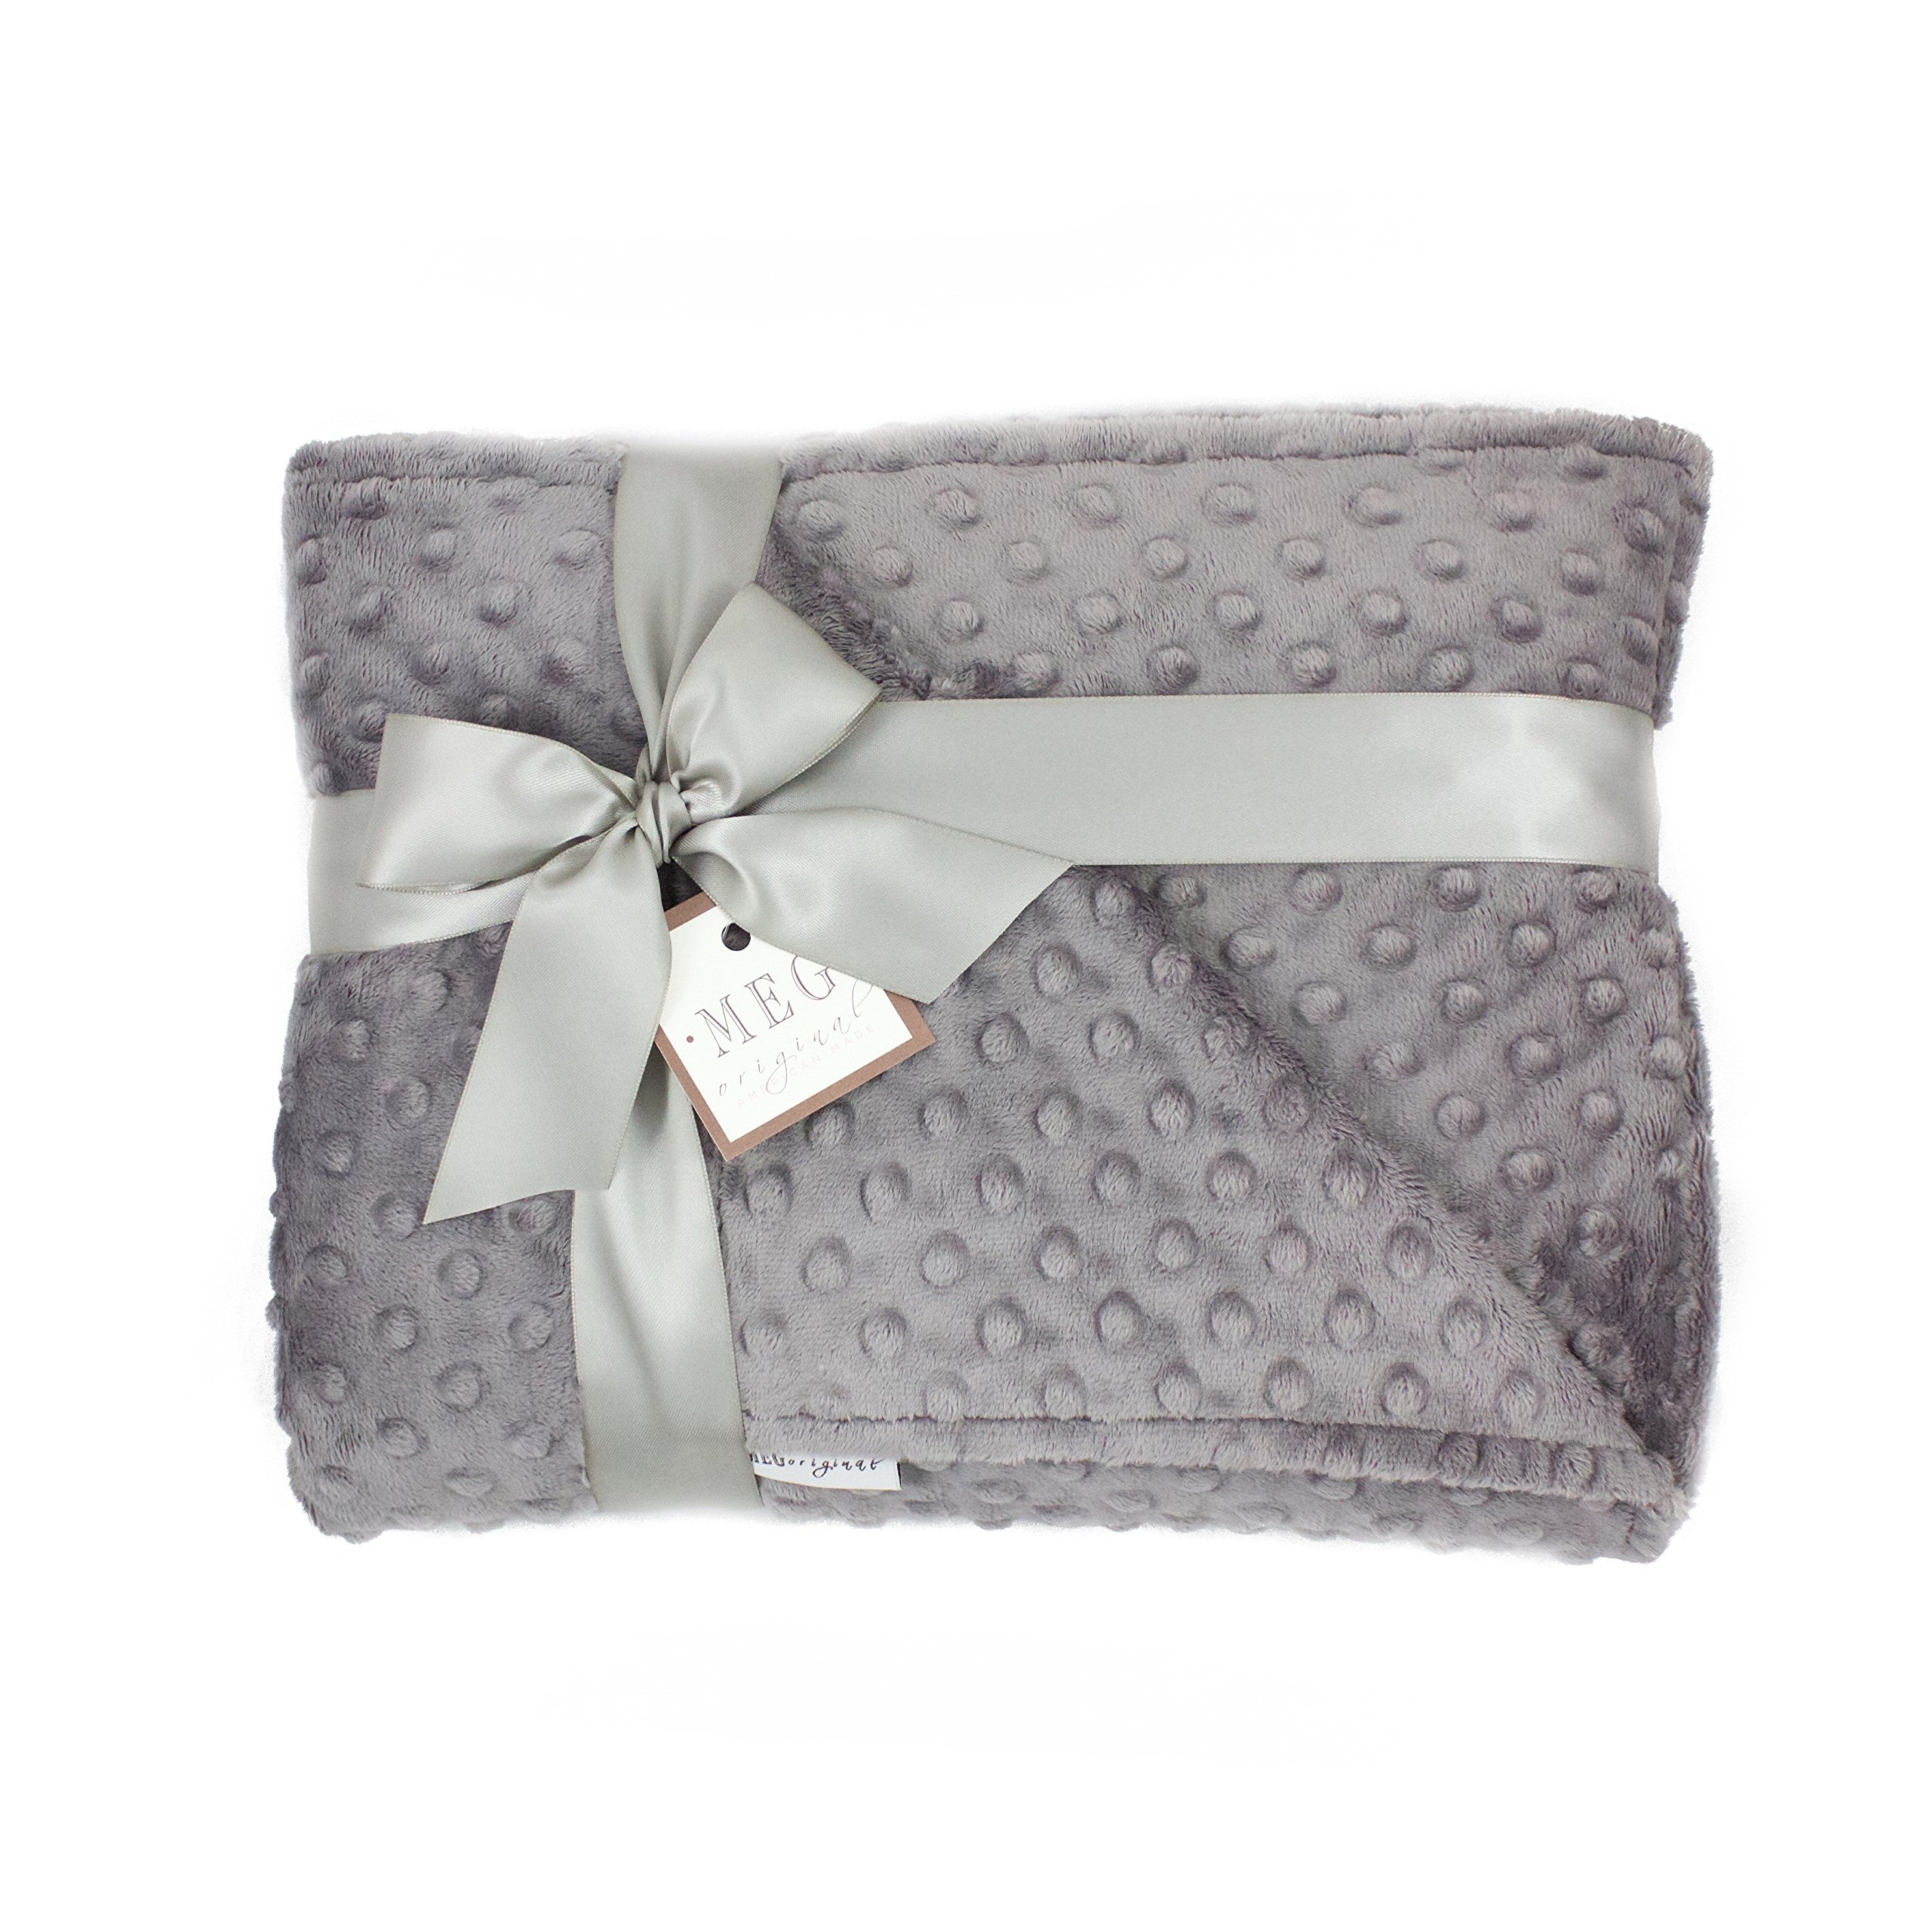 MEG Original Minky Dot Crib/Toddler Bed Baby Blanket, Double-sided Charcoal 670